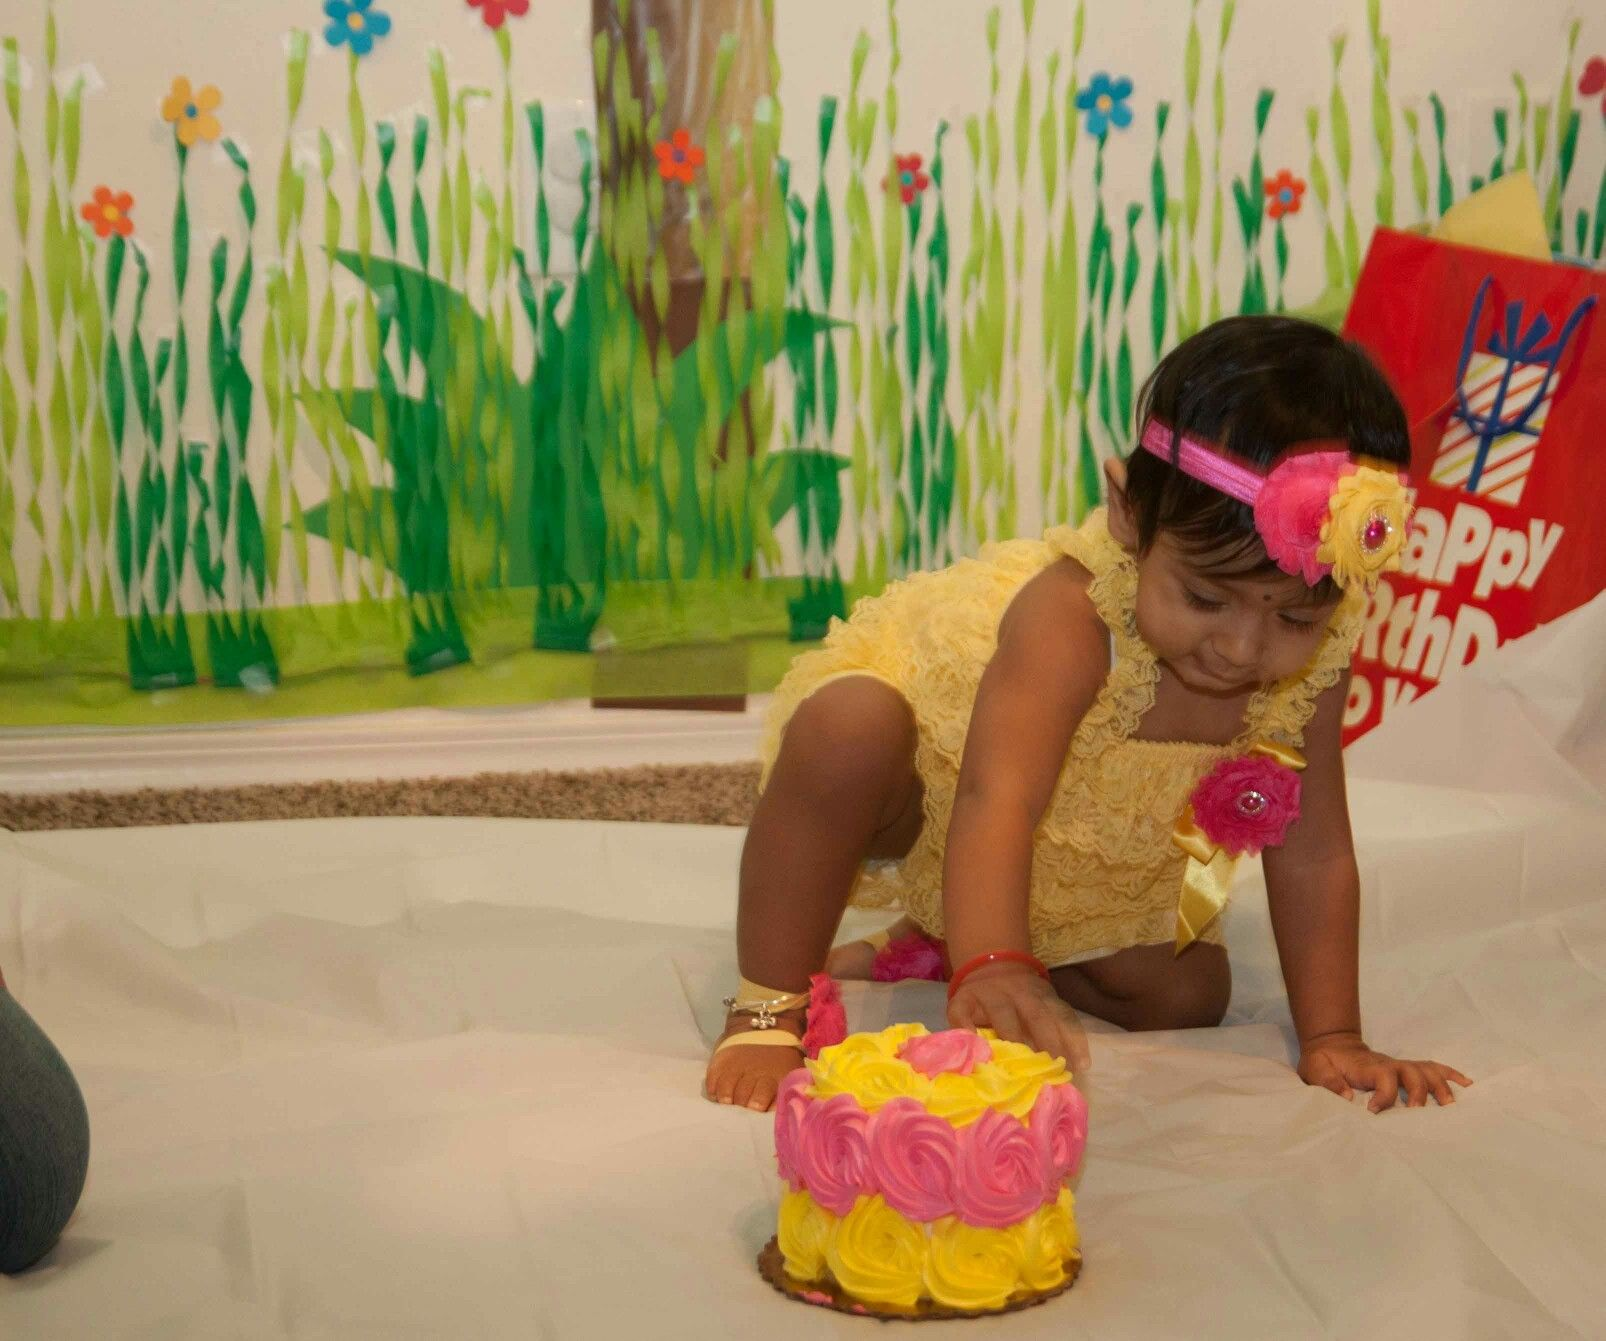 First Birthday Diy Decor Crepe Paper Grass Backdrop Cake Smash